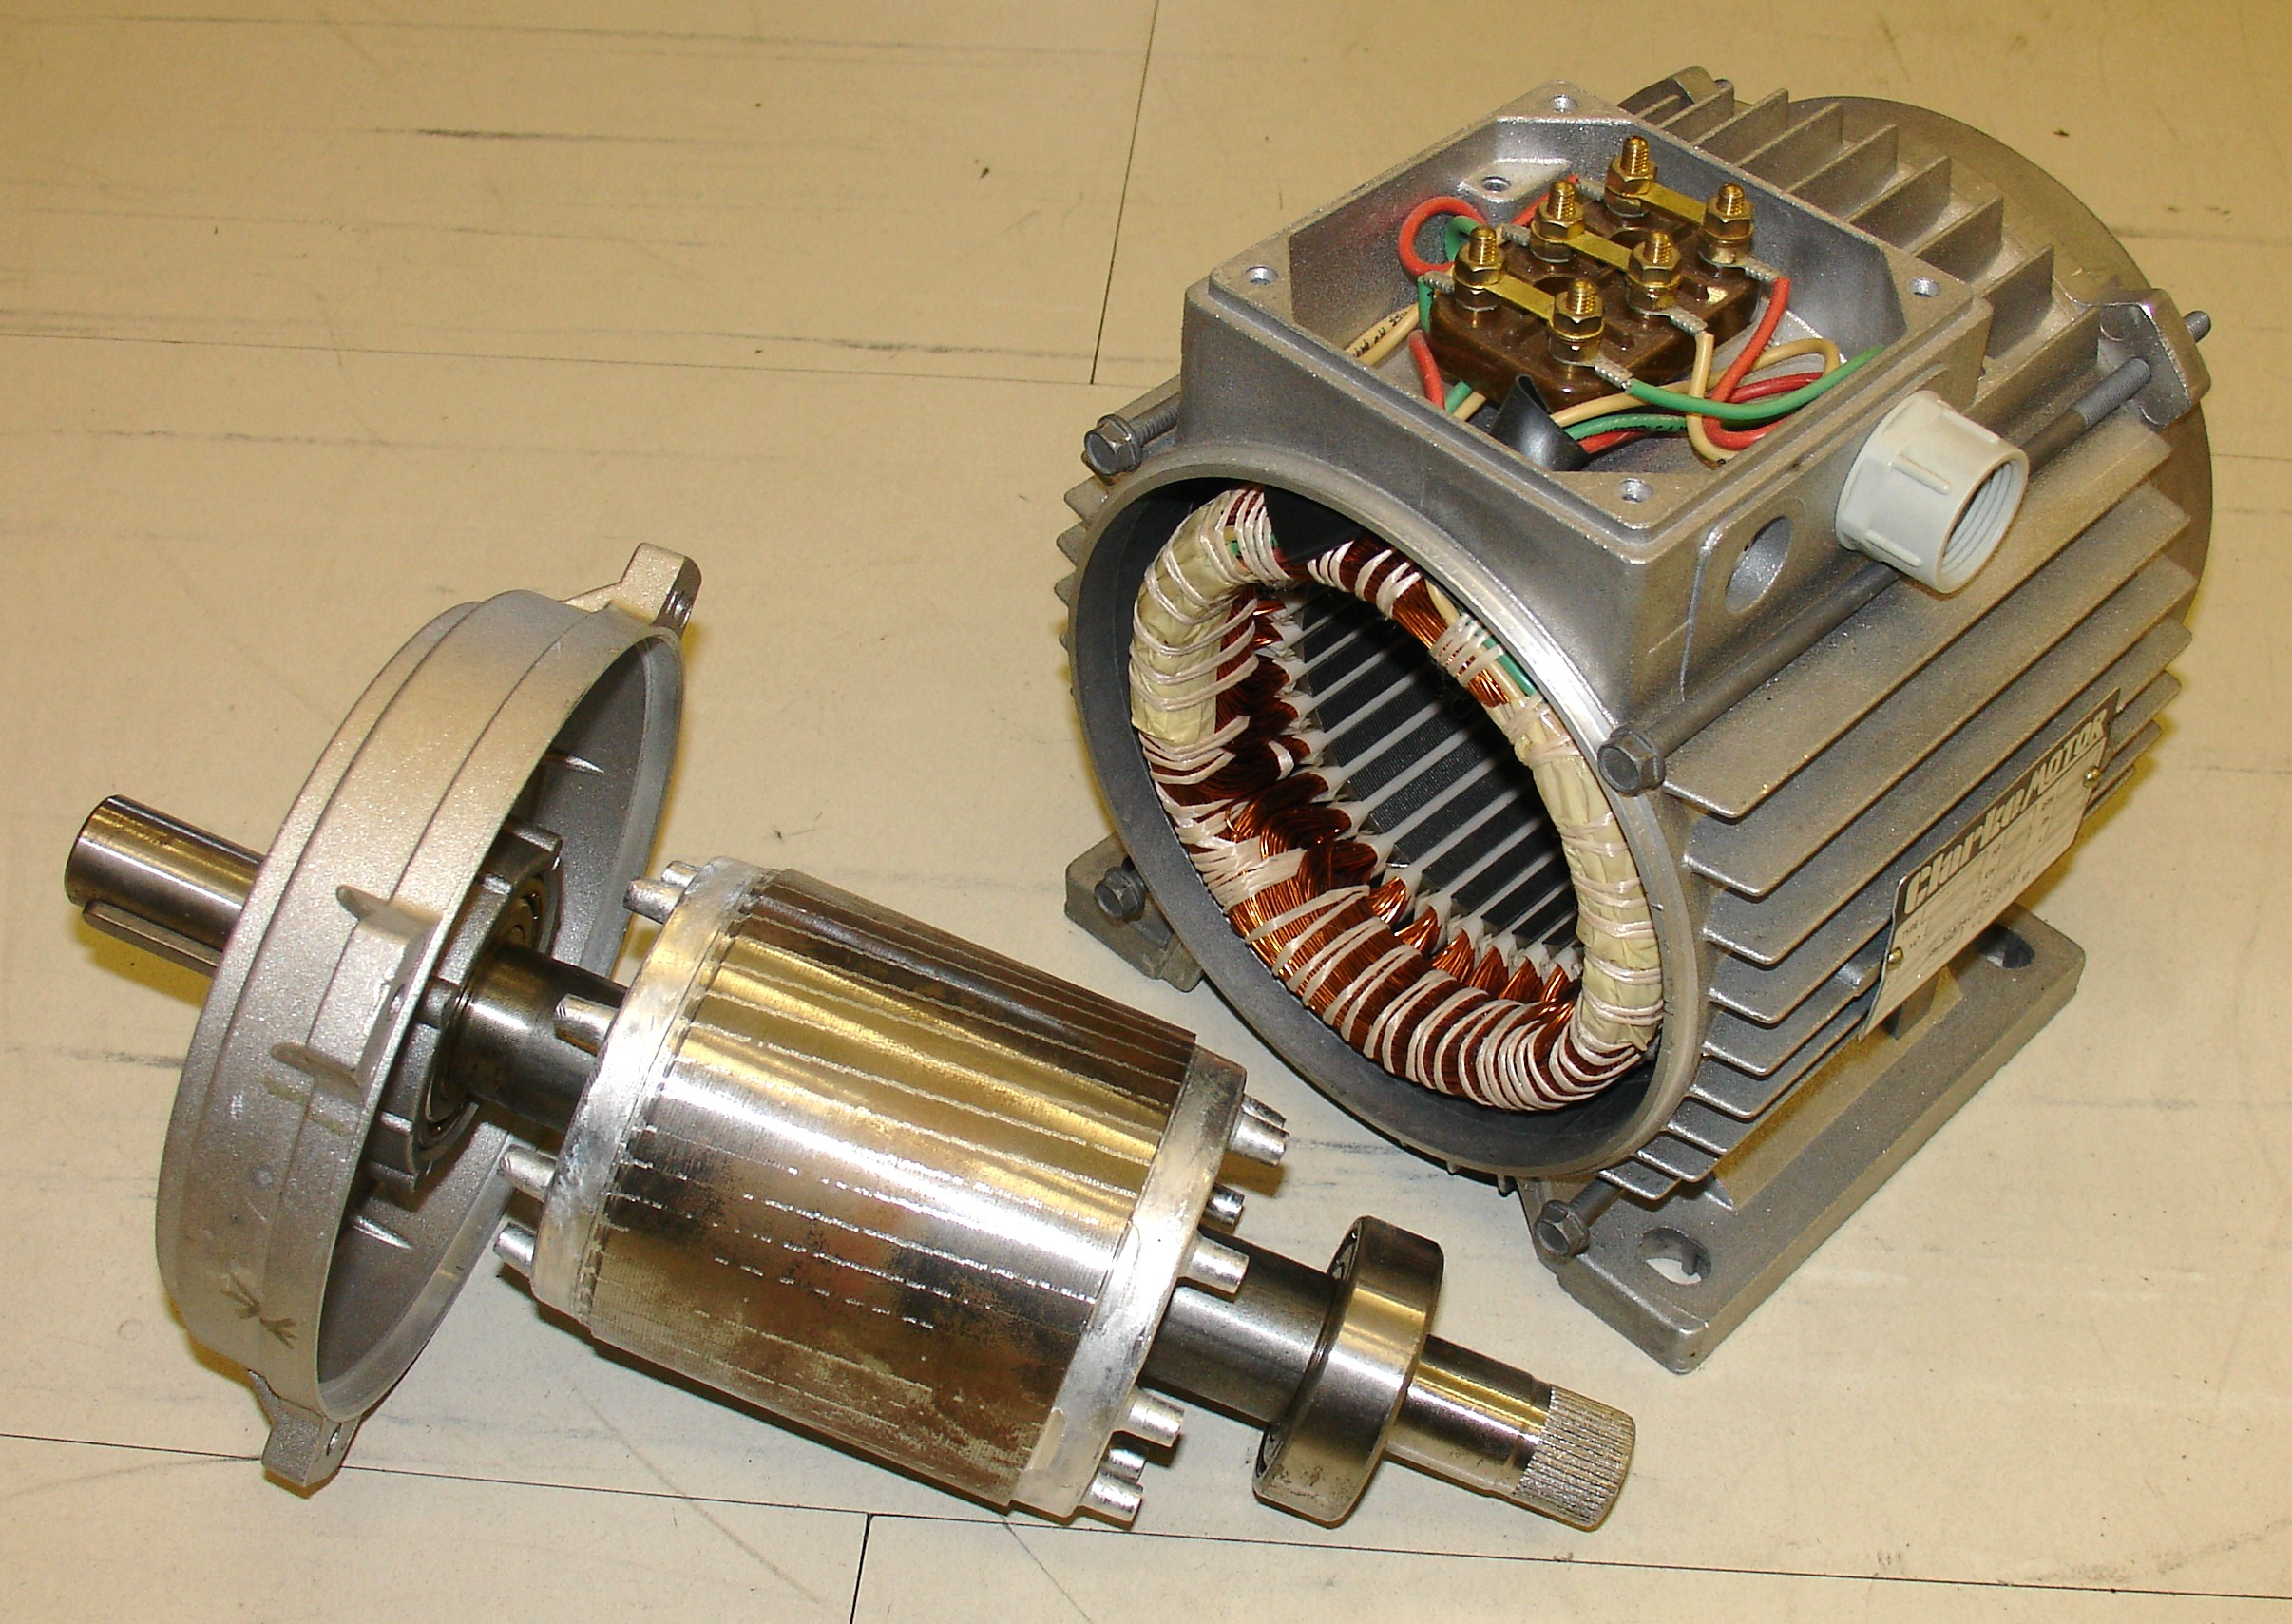 Electric Motor Wikipedia Mdc300120151 Brushless Speed Controllers 1hp And Over Rotor Left Stator Right